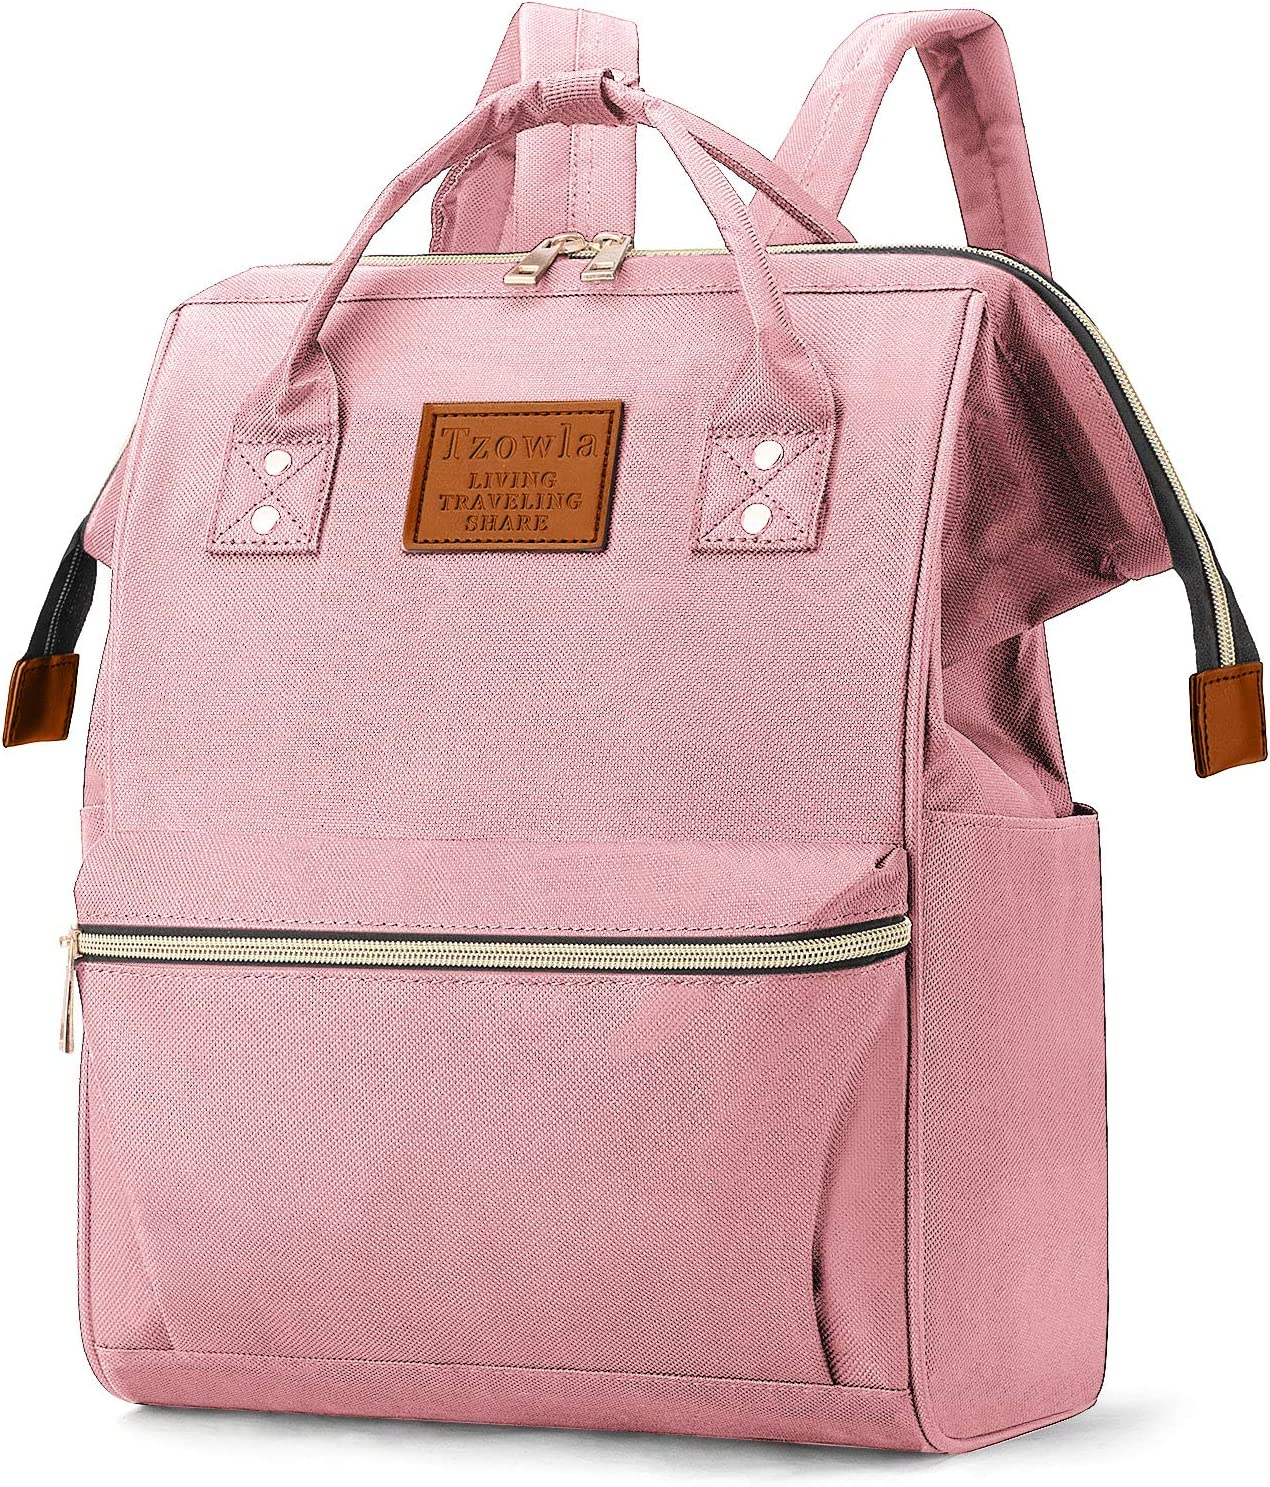 Tzowla College School Travel Laptop Backpack Book Doctor Shopping Bag Light Weight Casual Daypack for Women Men Girls Boys Student Fit 14 inch Compter Netbook-Pink